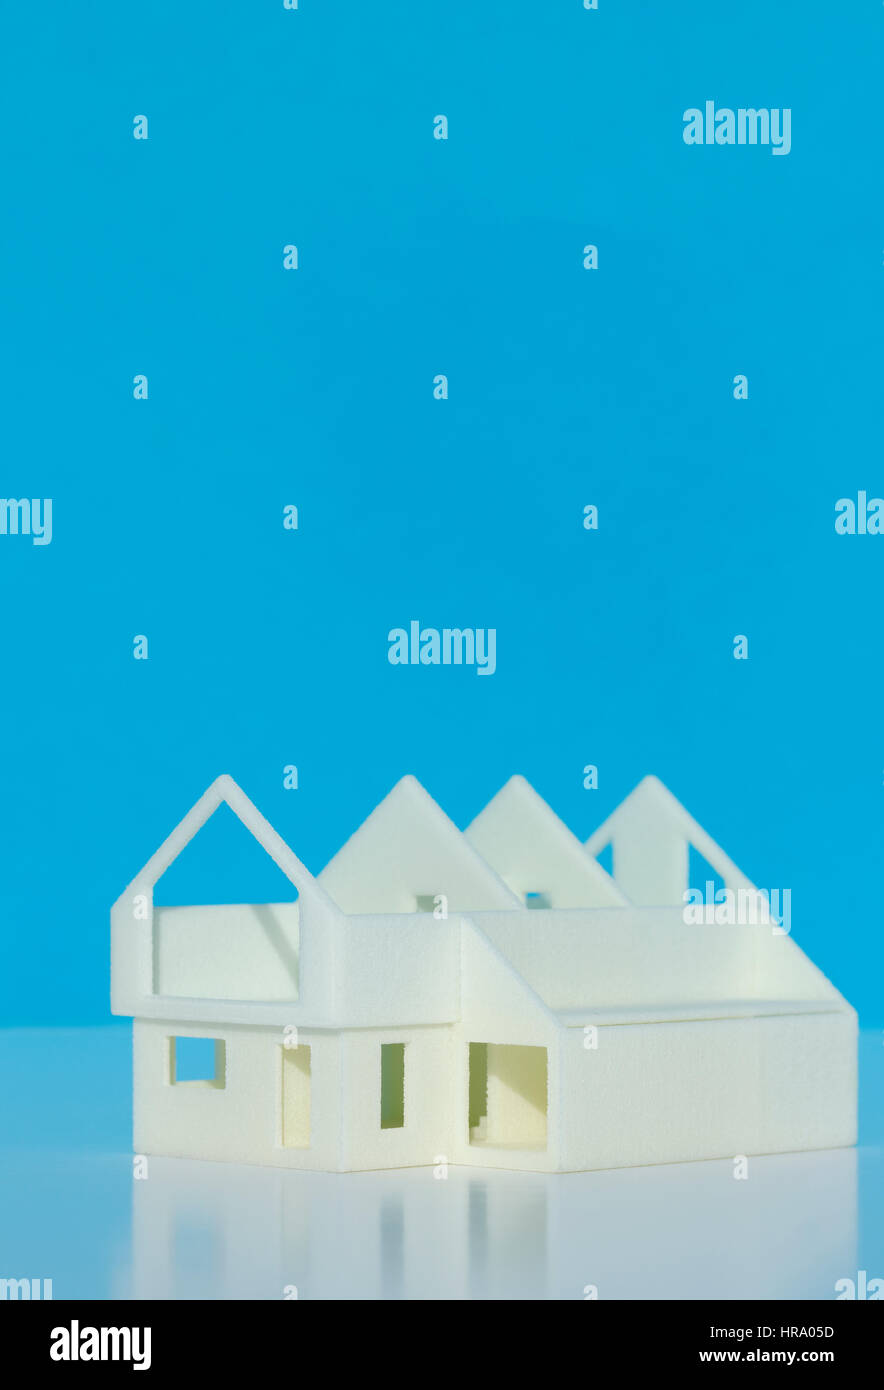 3D Printed Model House - Stock Image